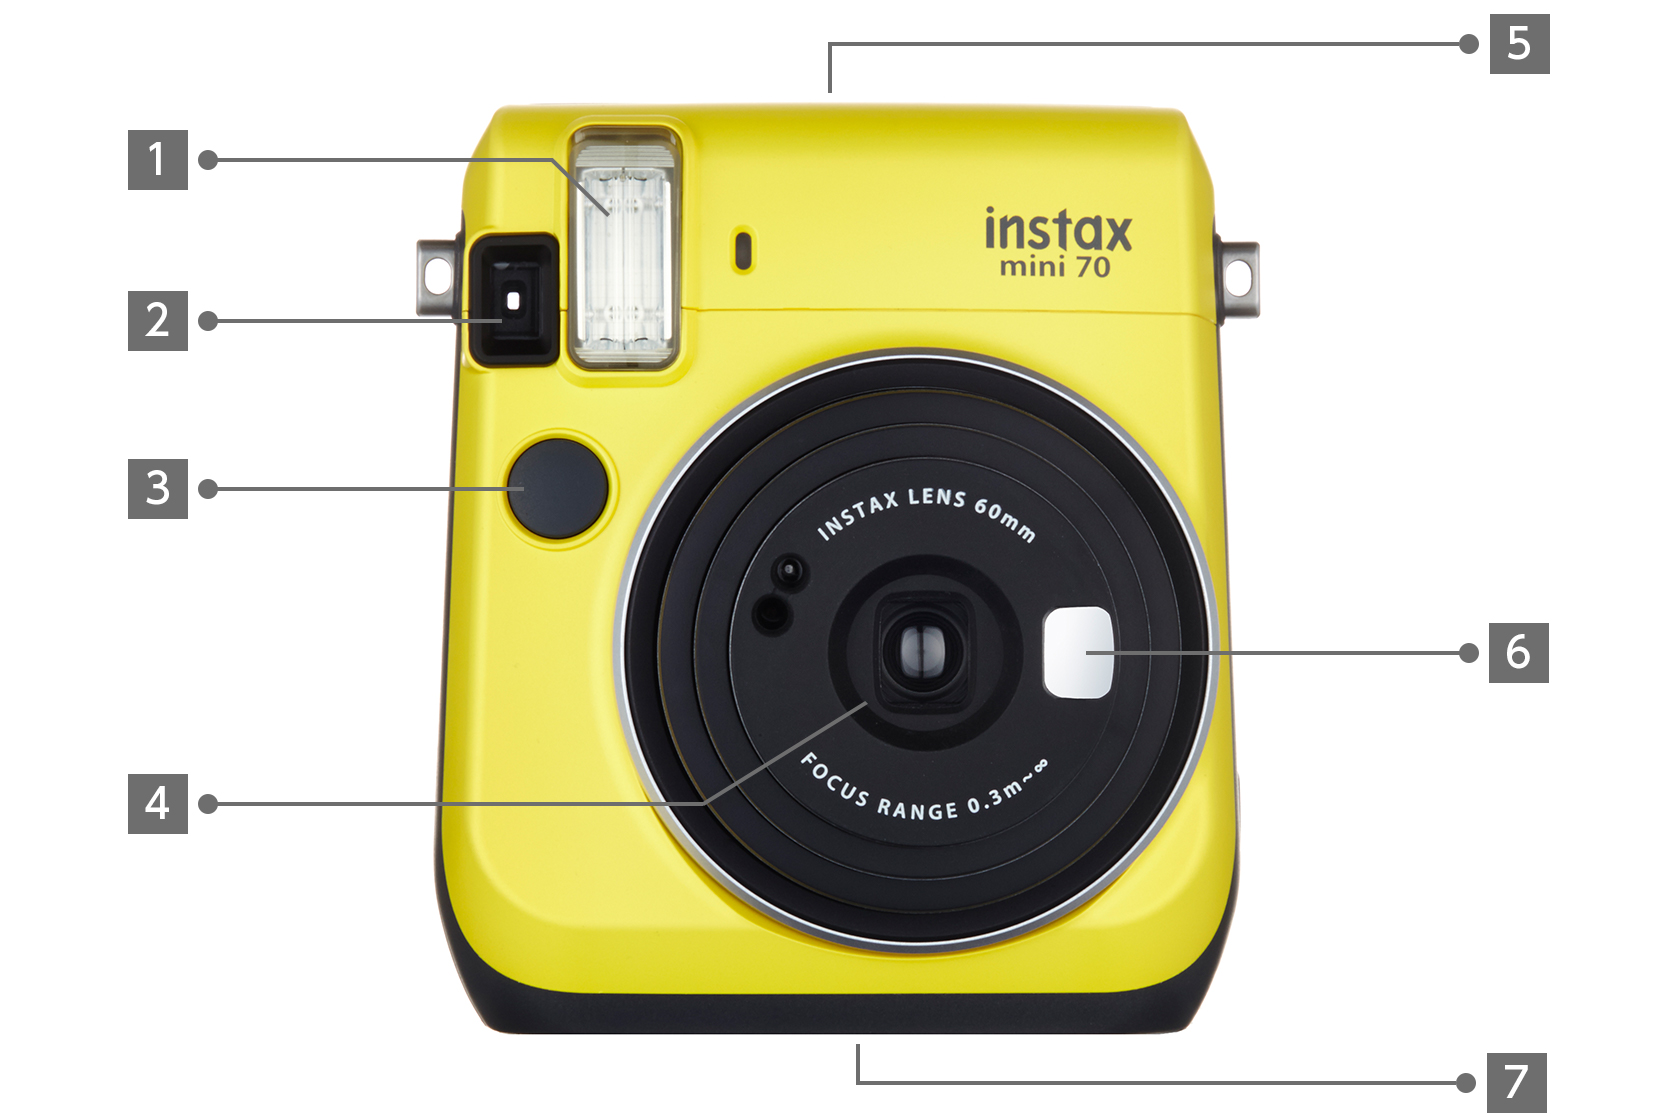 Front View of yellow Mini 70 camera